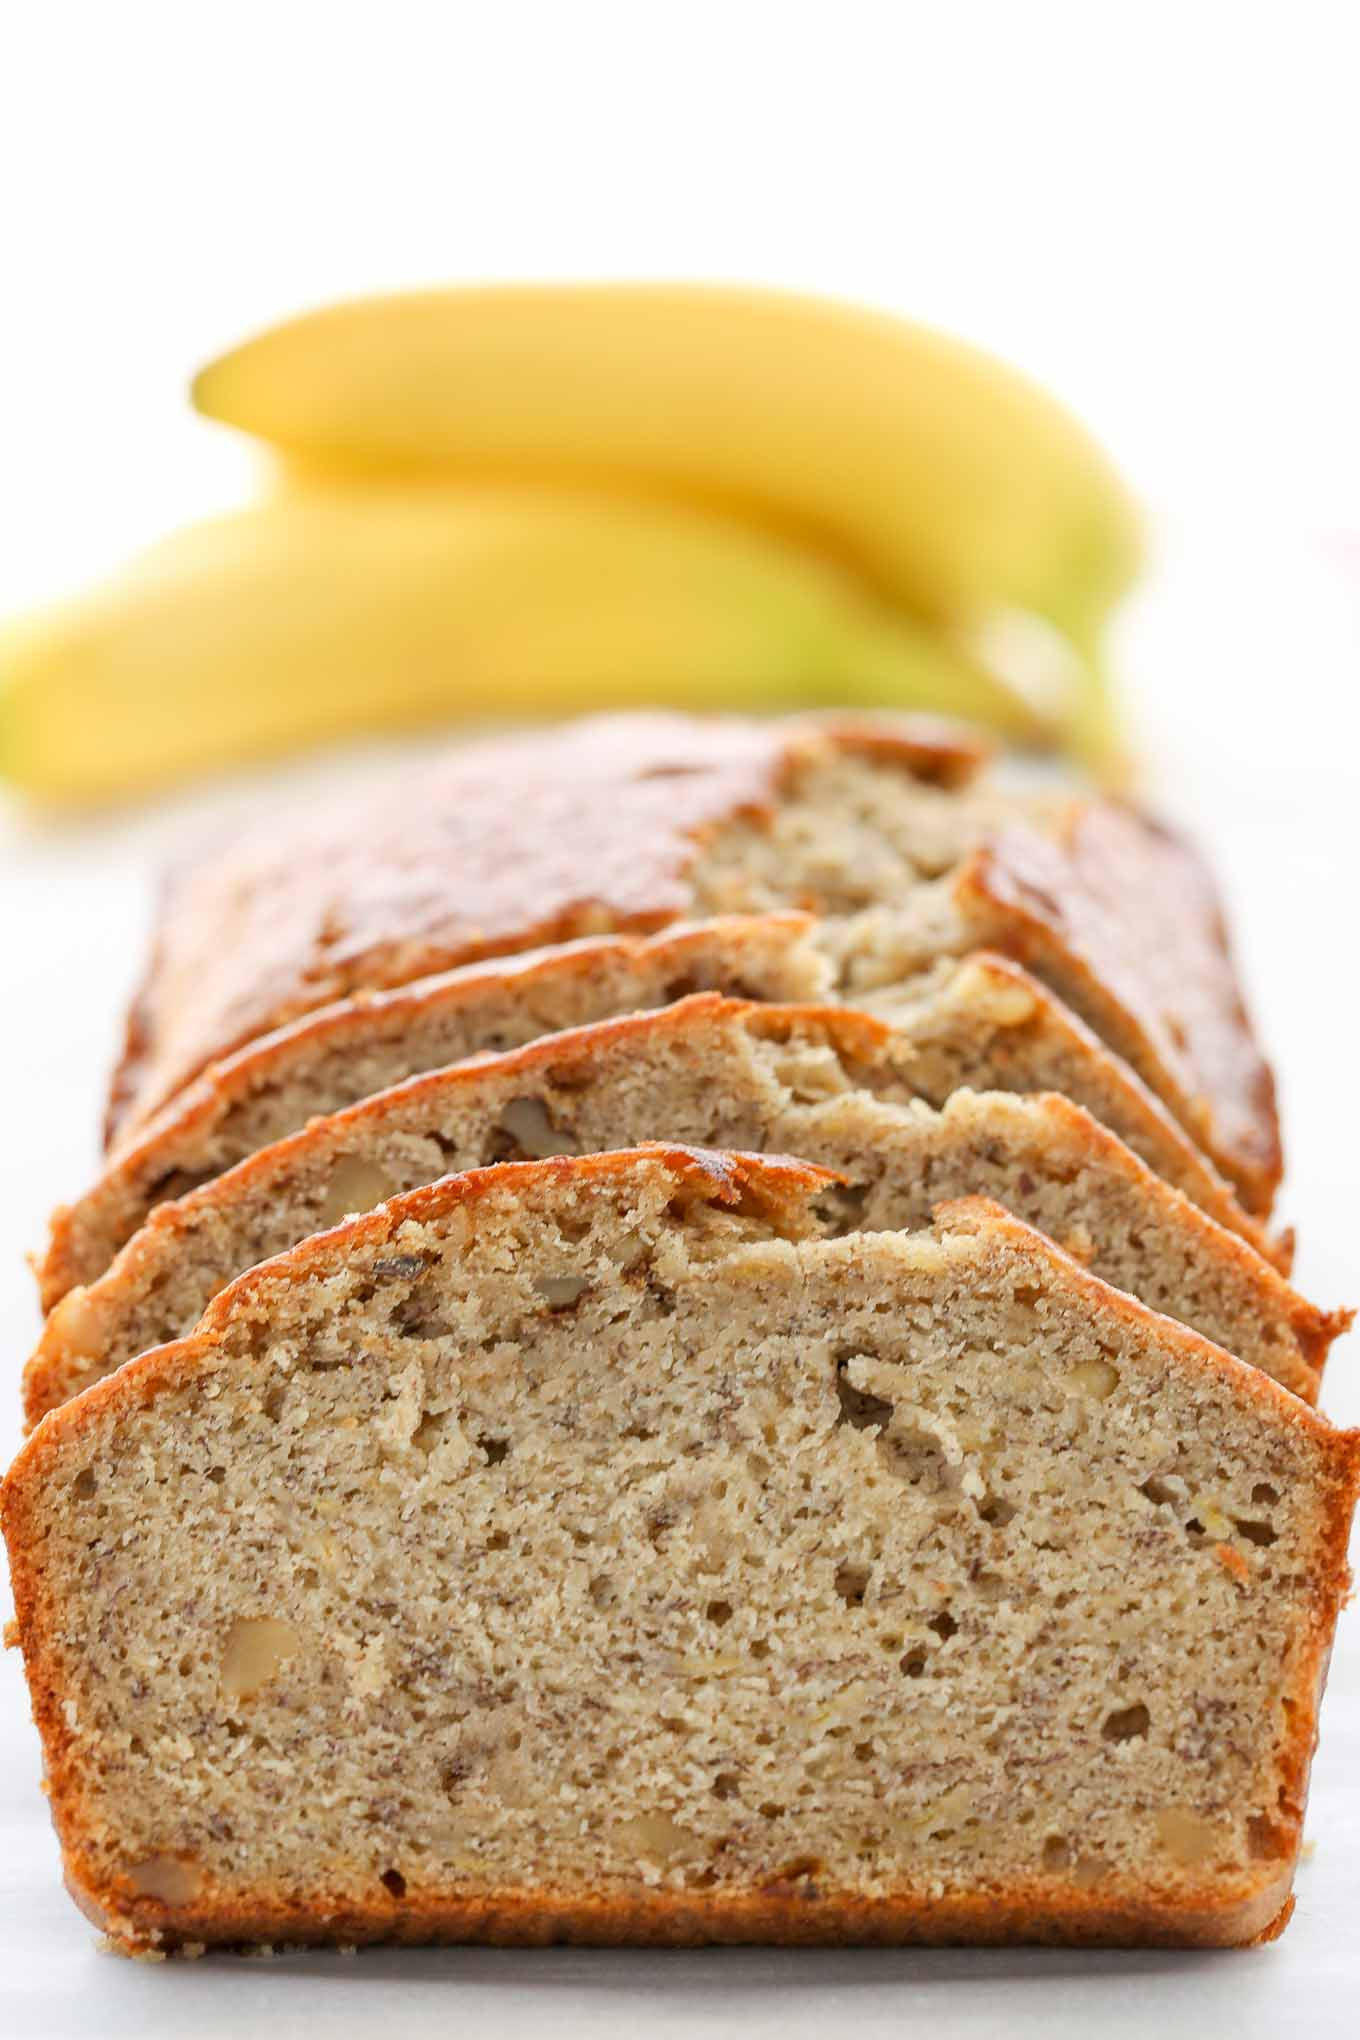 banana bread recipe classic moist sweet nut recipes plain livewellbakeoften butter walnut baking bake ingredients soda powder healthy perfectly light